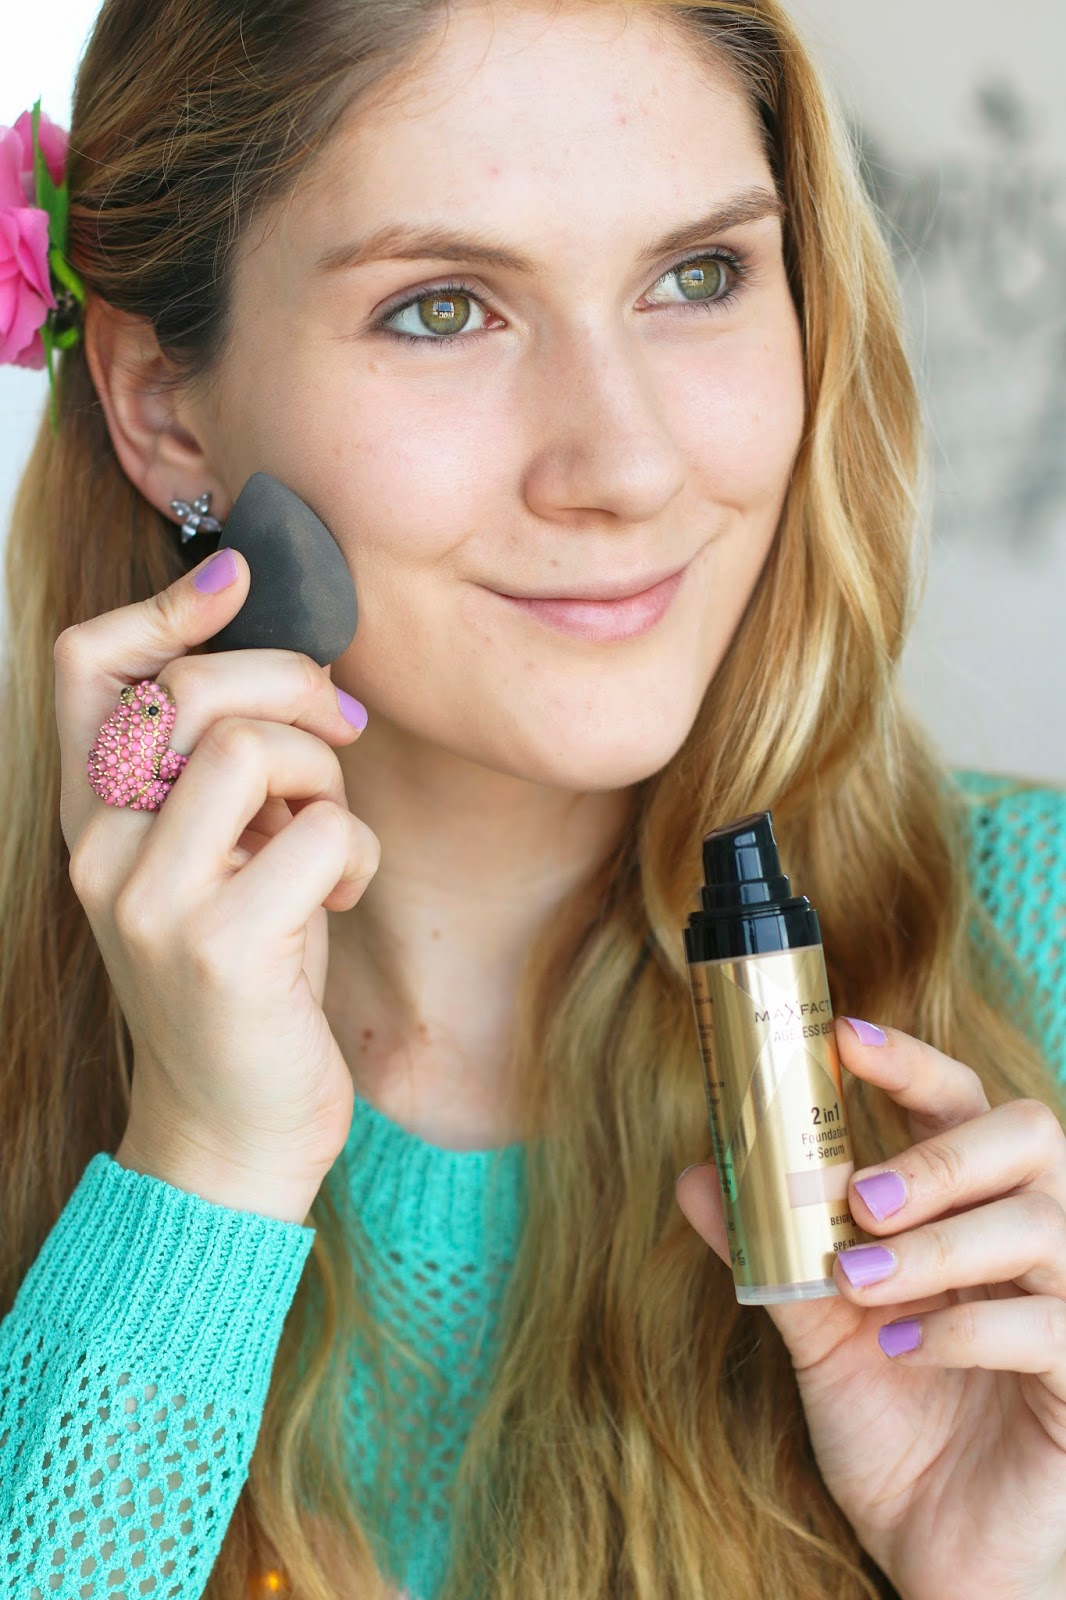 Max Factor 2 in 1 Foundation and Serum